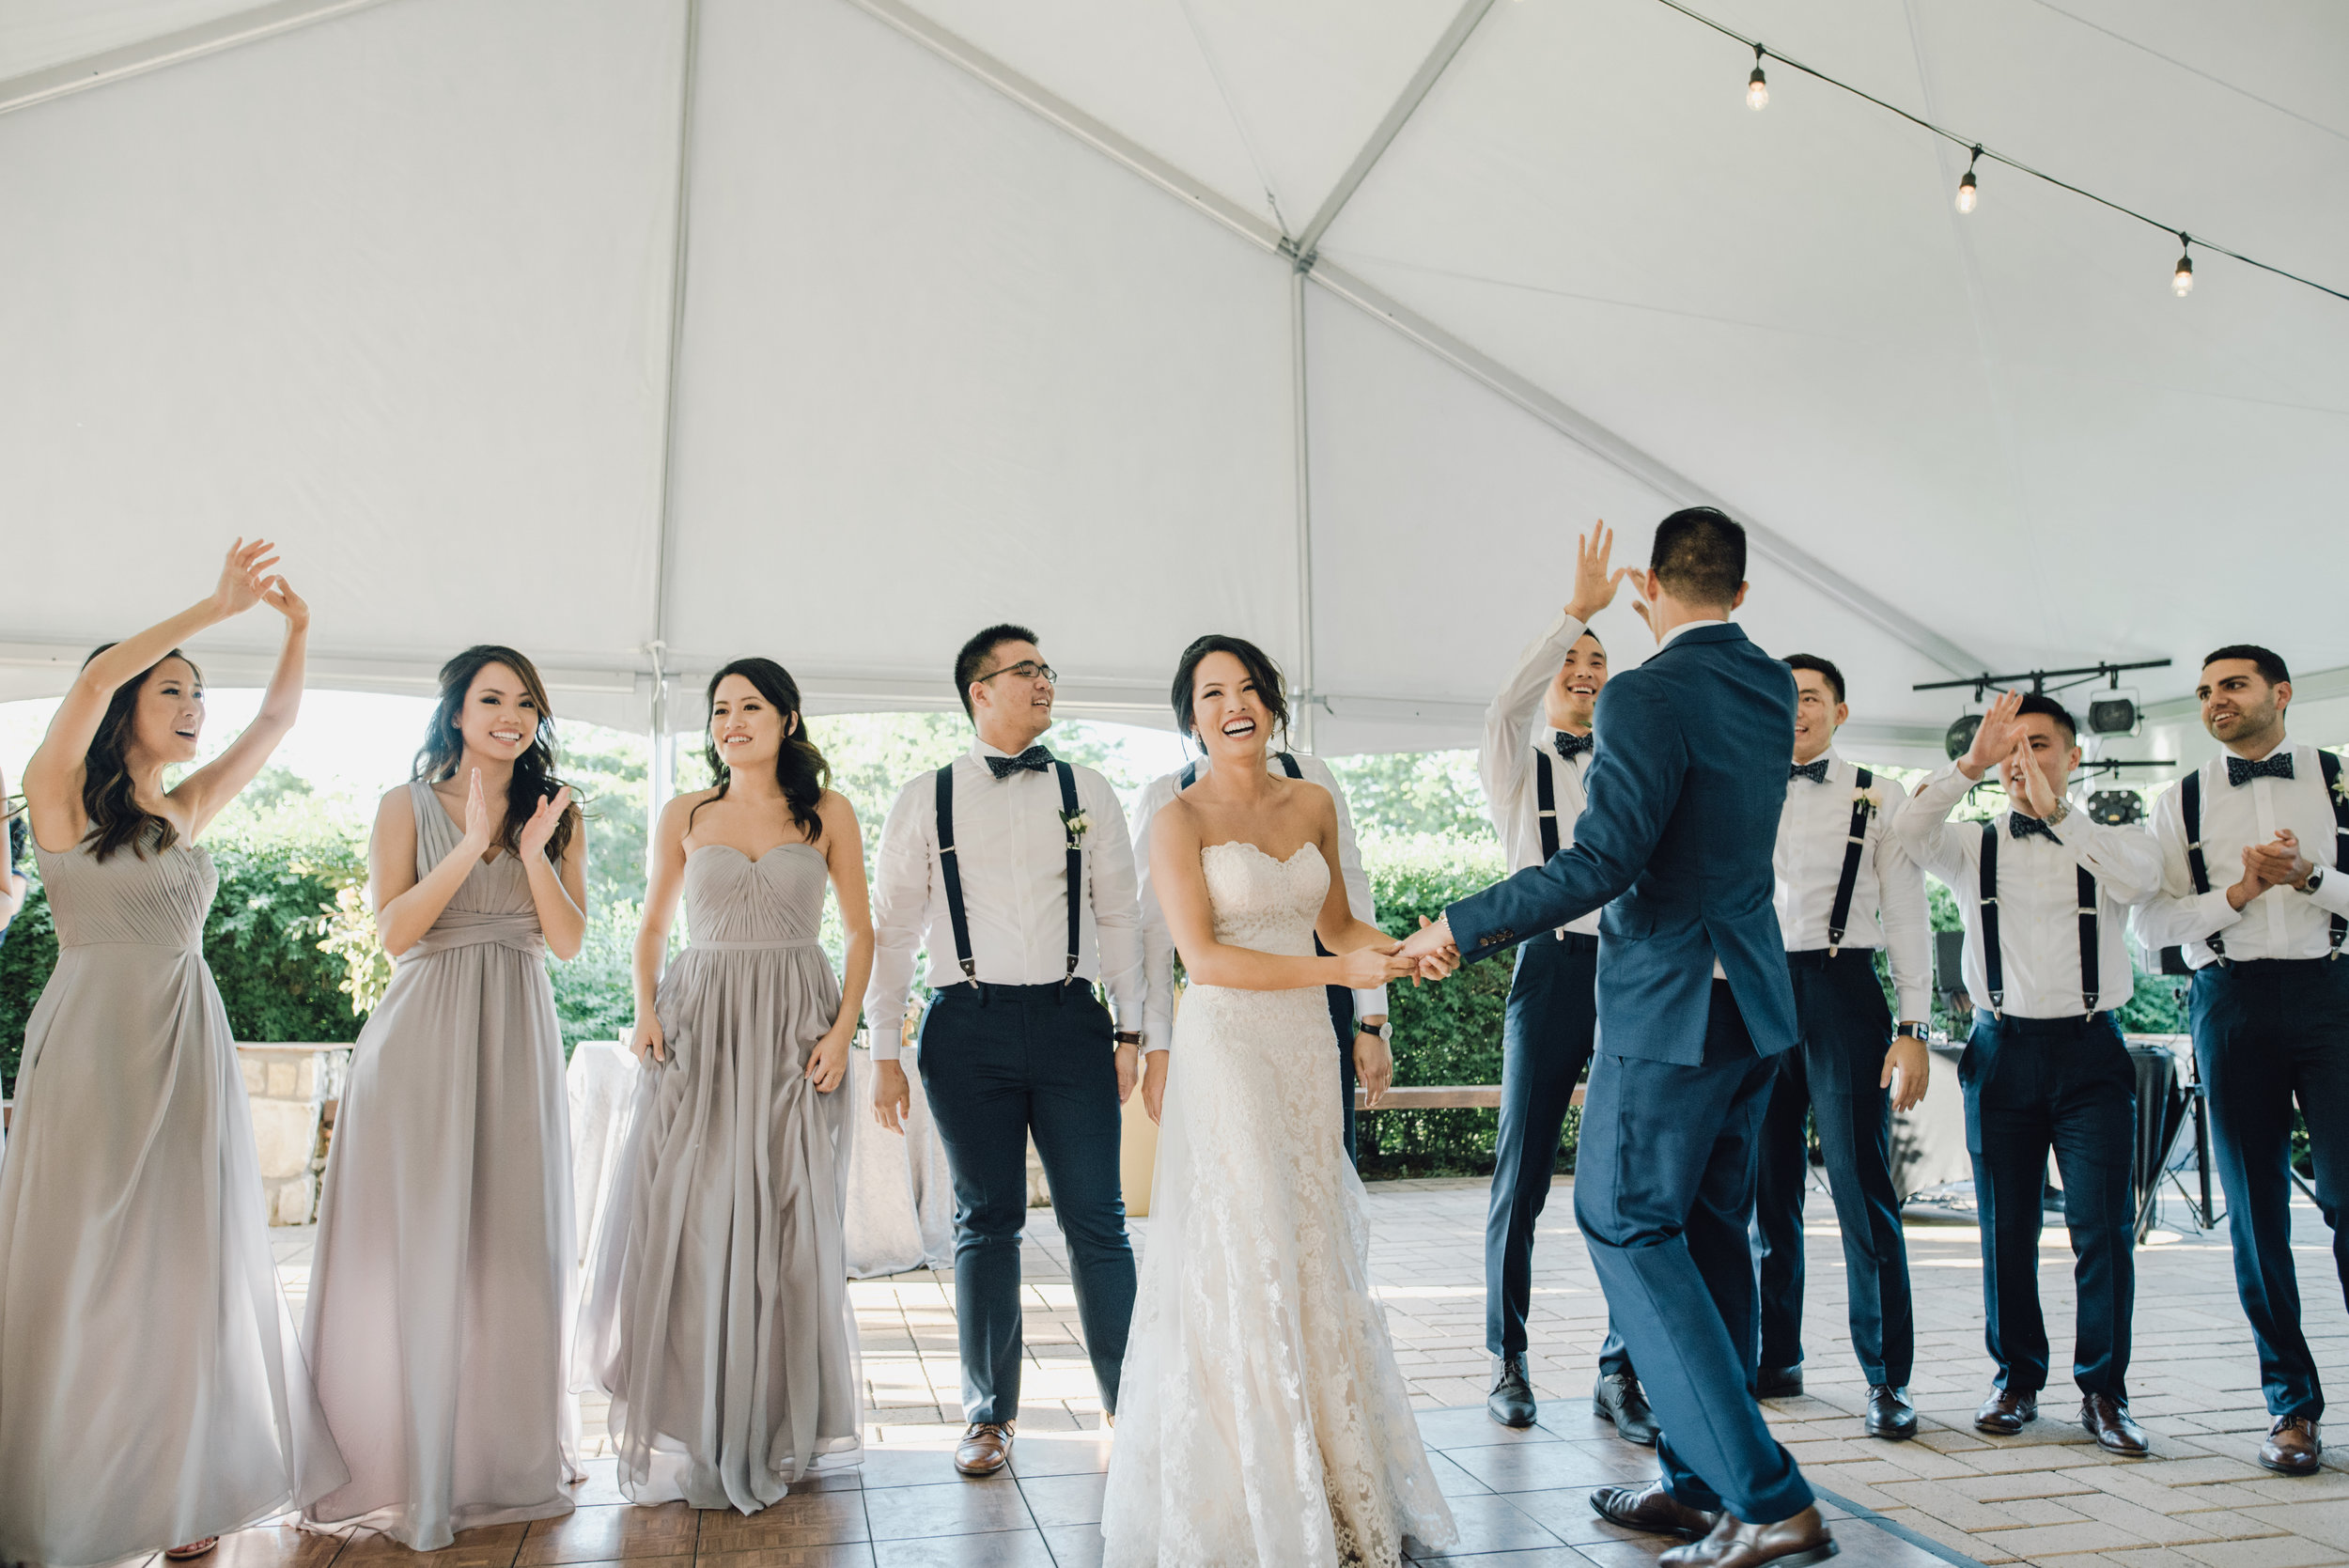 Main and Simple Photography_2018_Weddings_Austin_B+E-1607.jpg